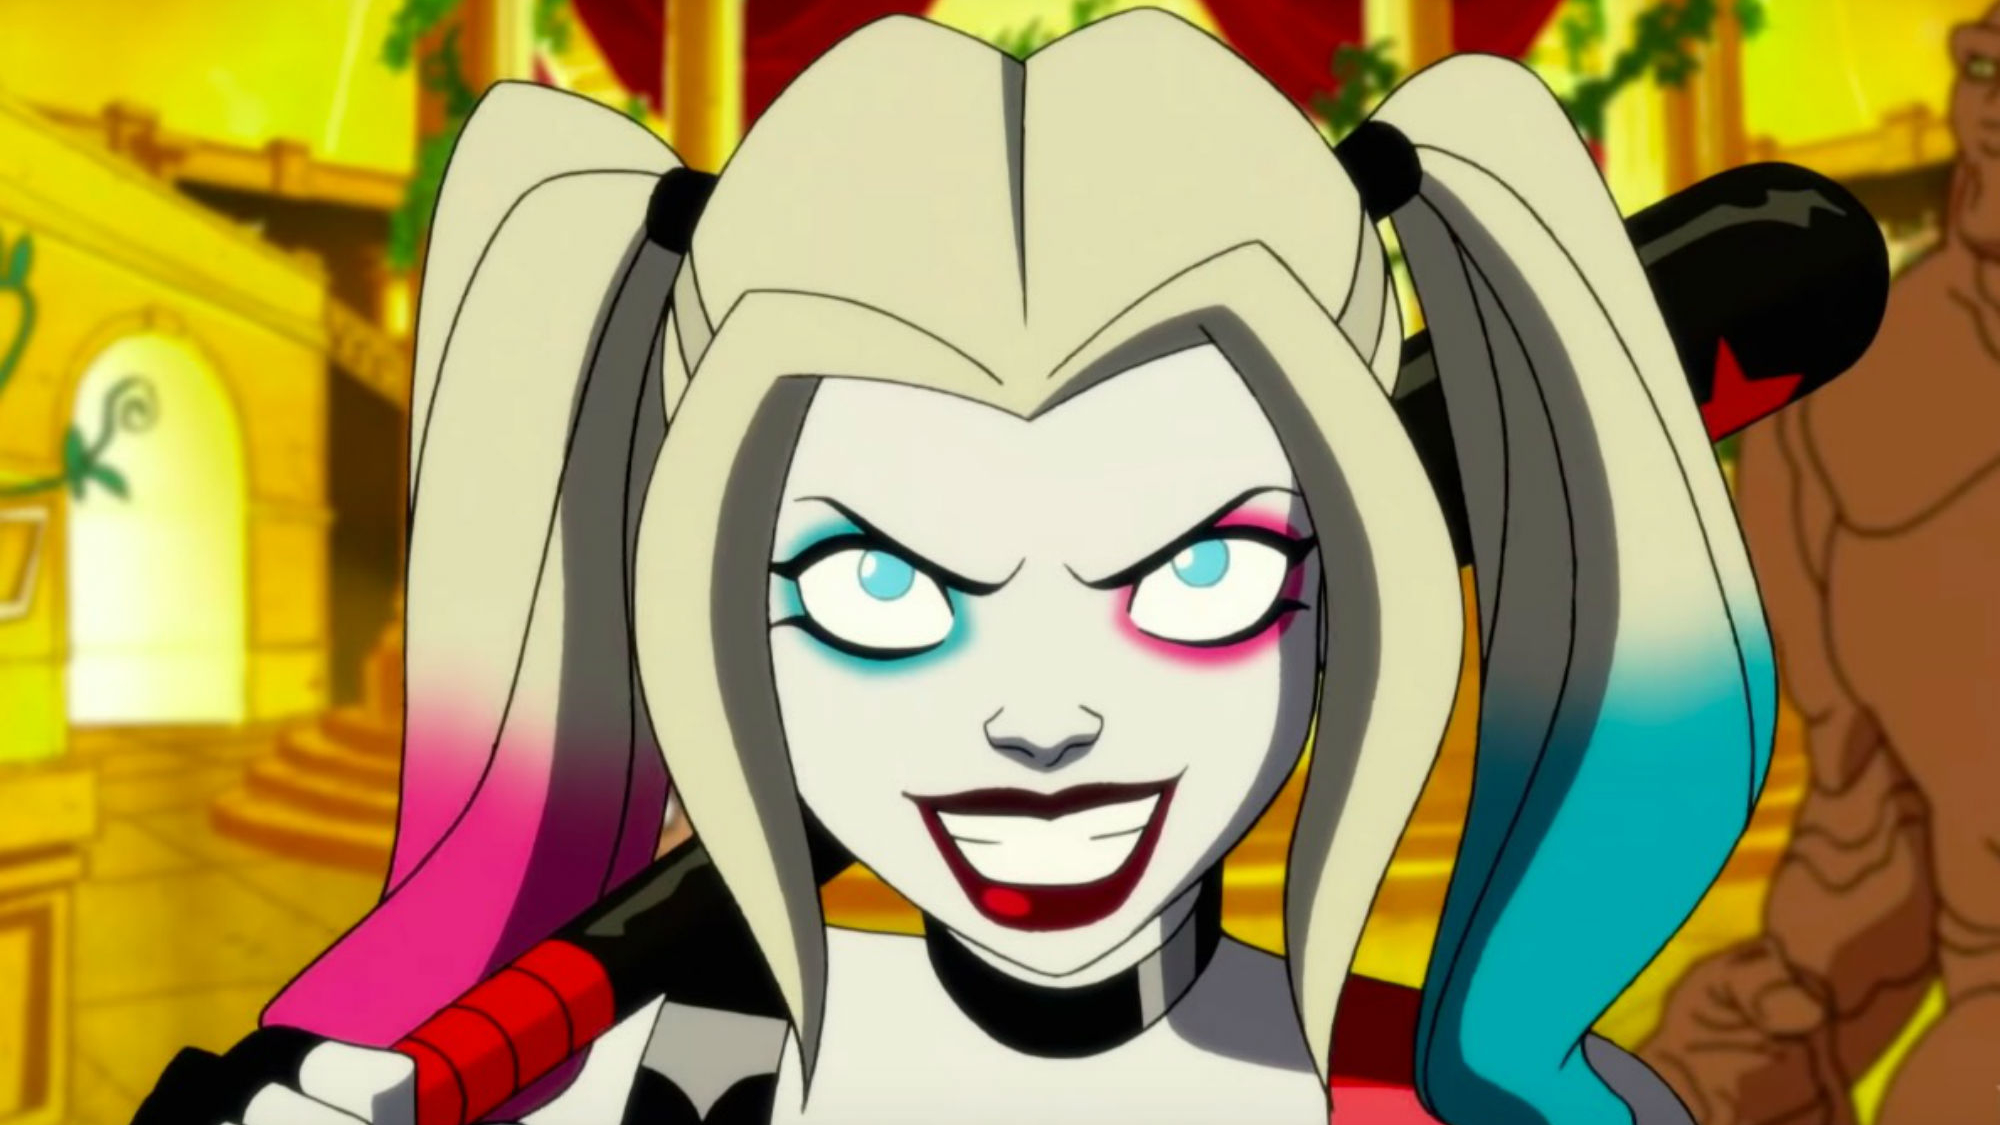 Kaley Cuoco's Harley Quinn Saved From Cancellation